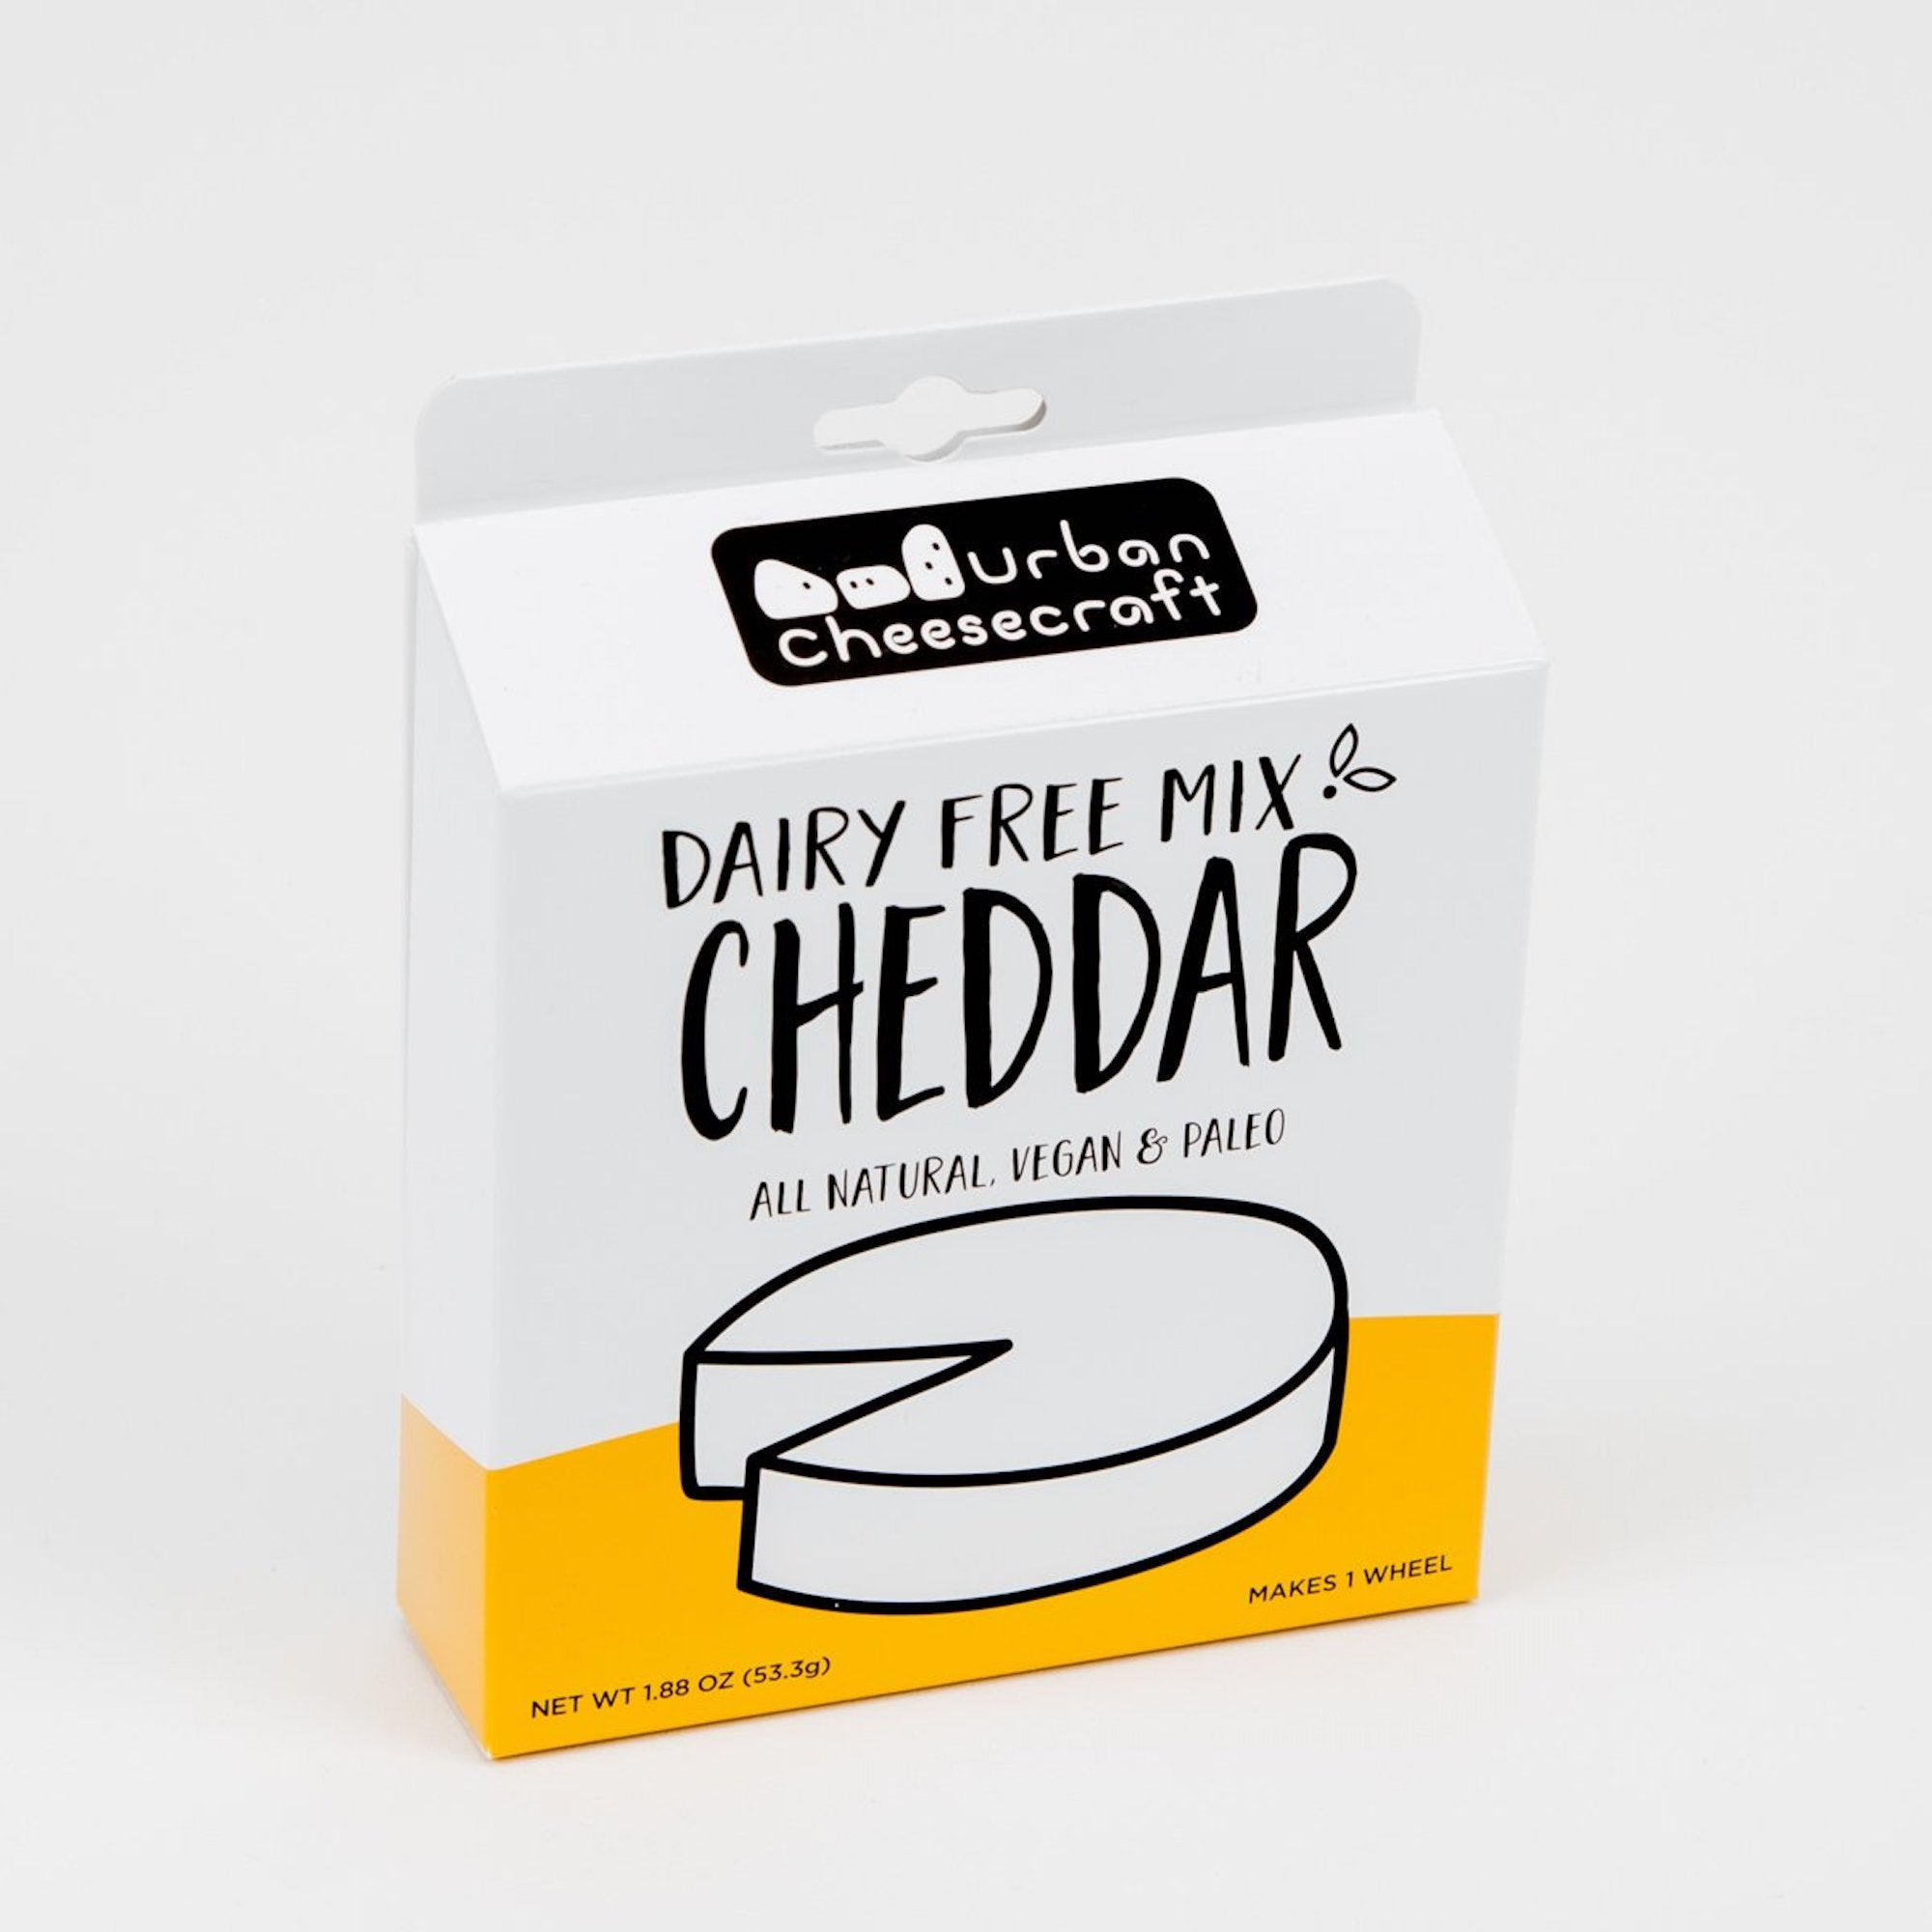 Dairy Free, Vegan, Paleo Cheese Mix - Cheddar